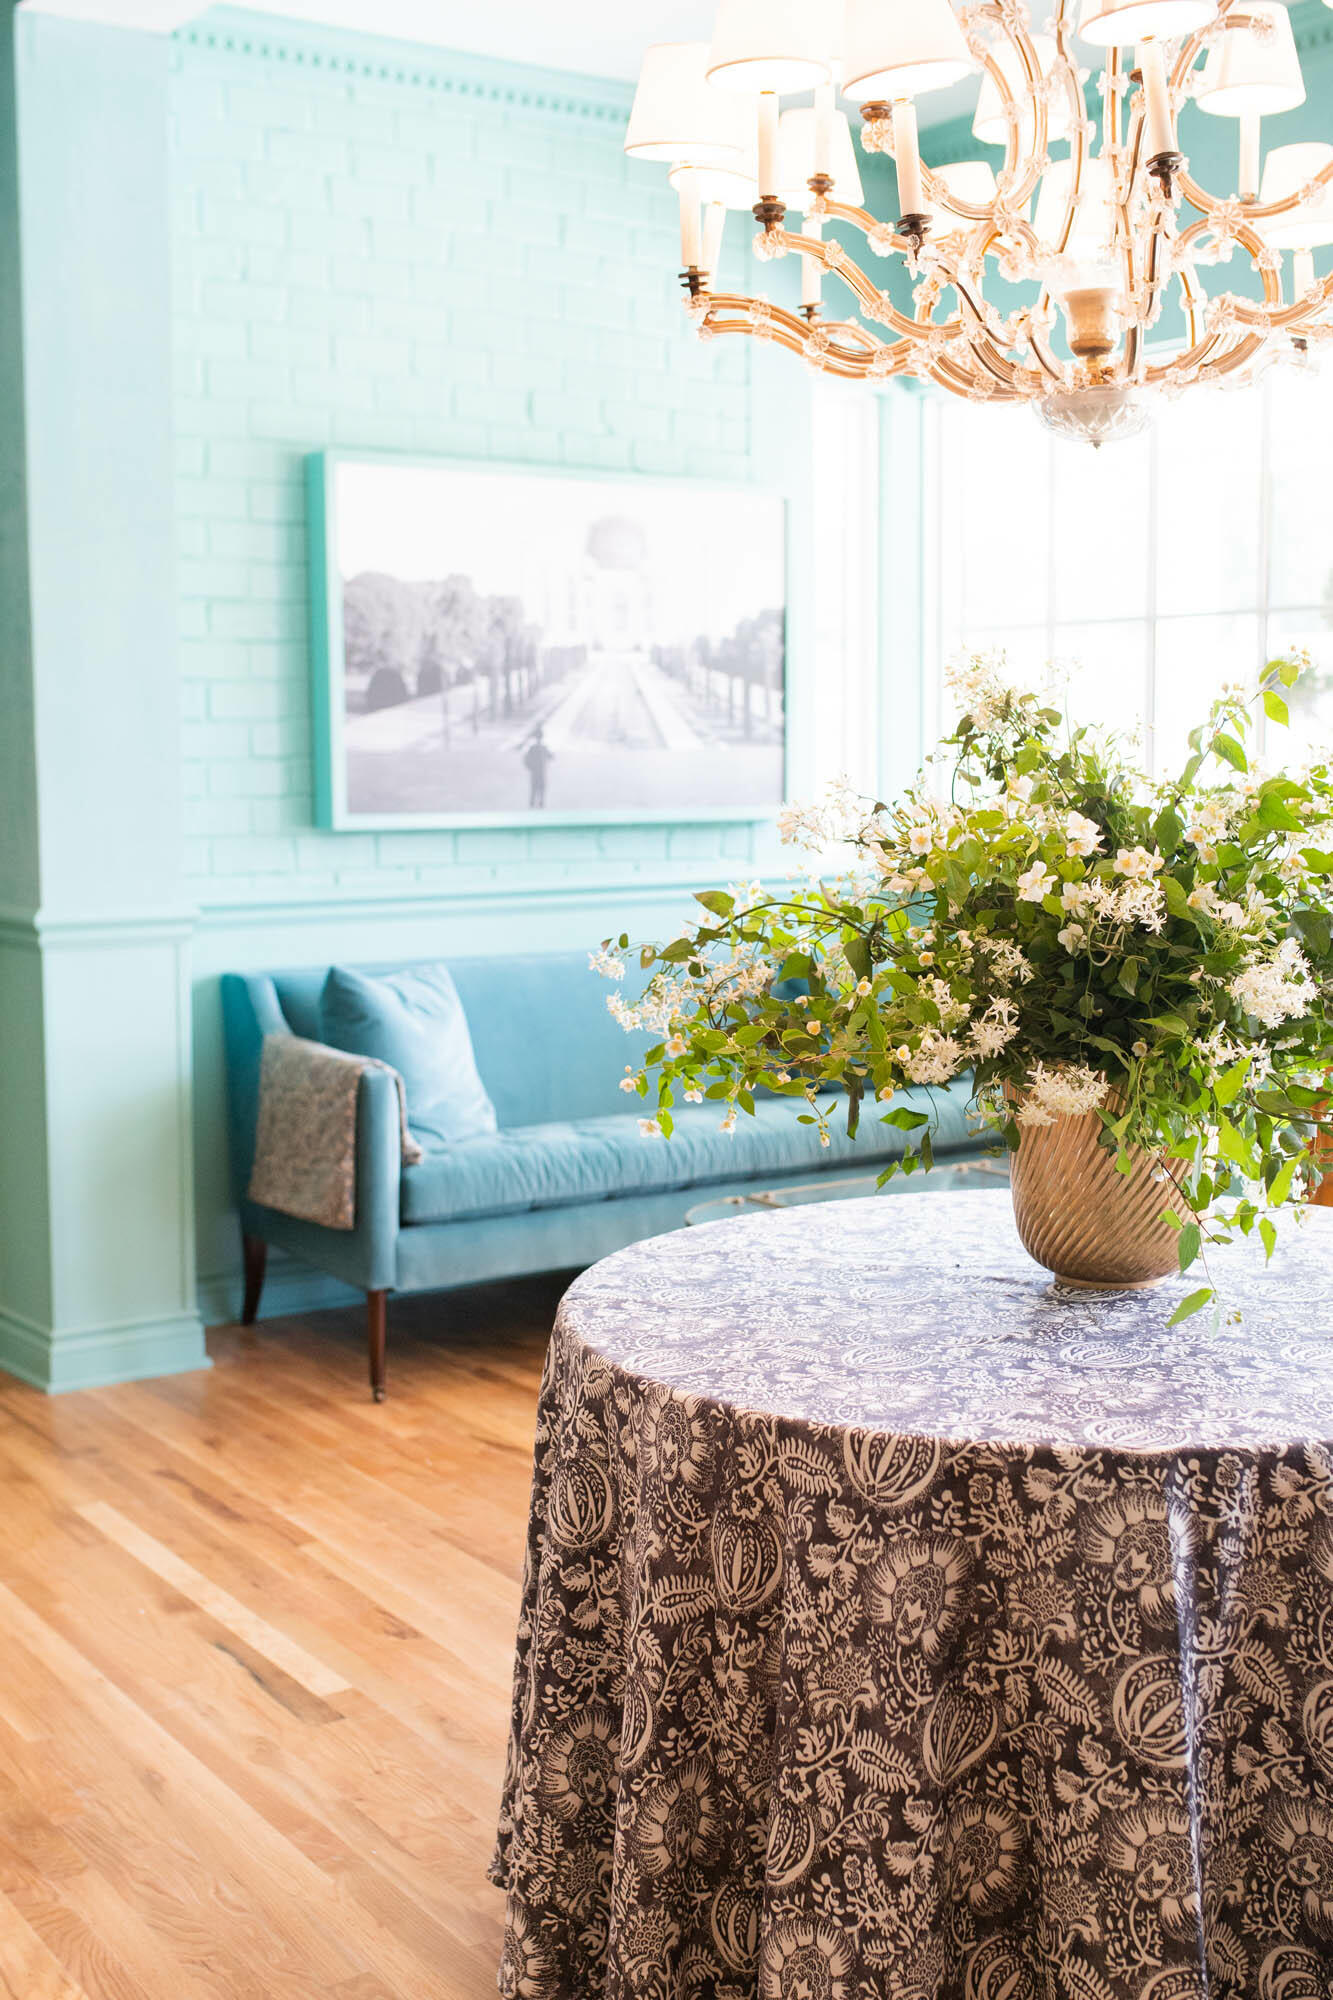 table and plant in spacious room with blue walls